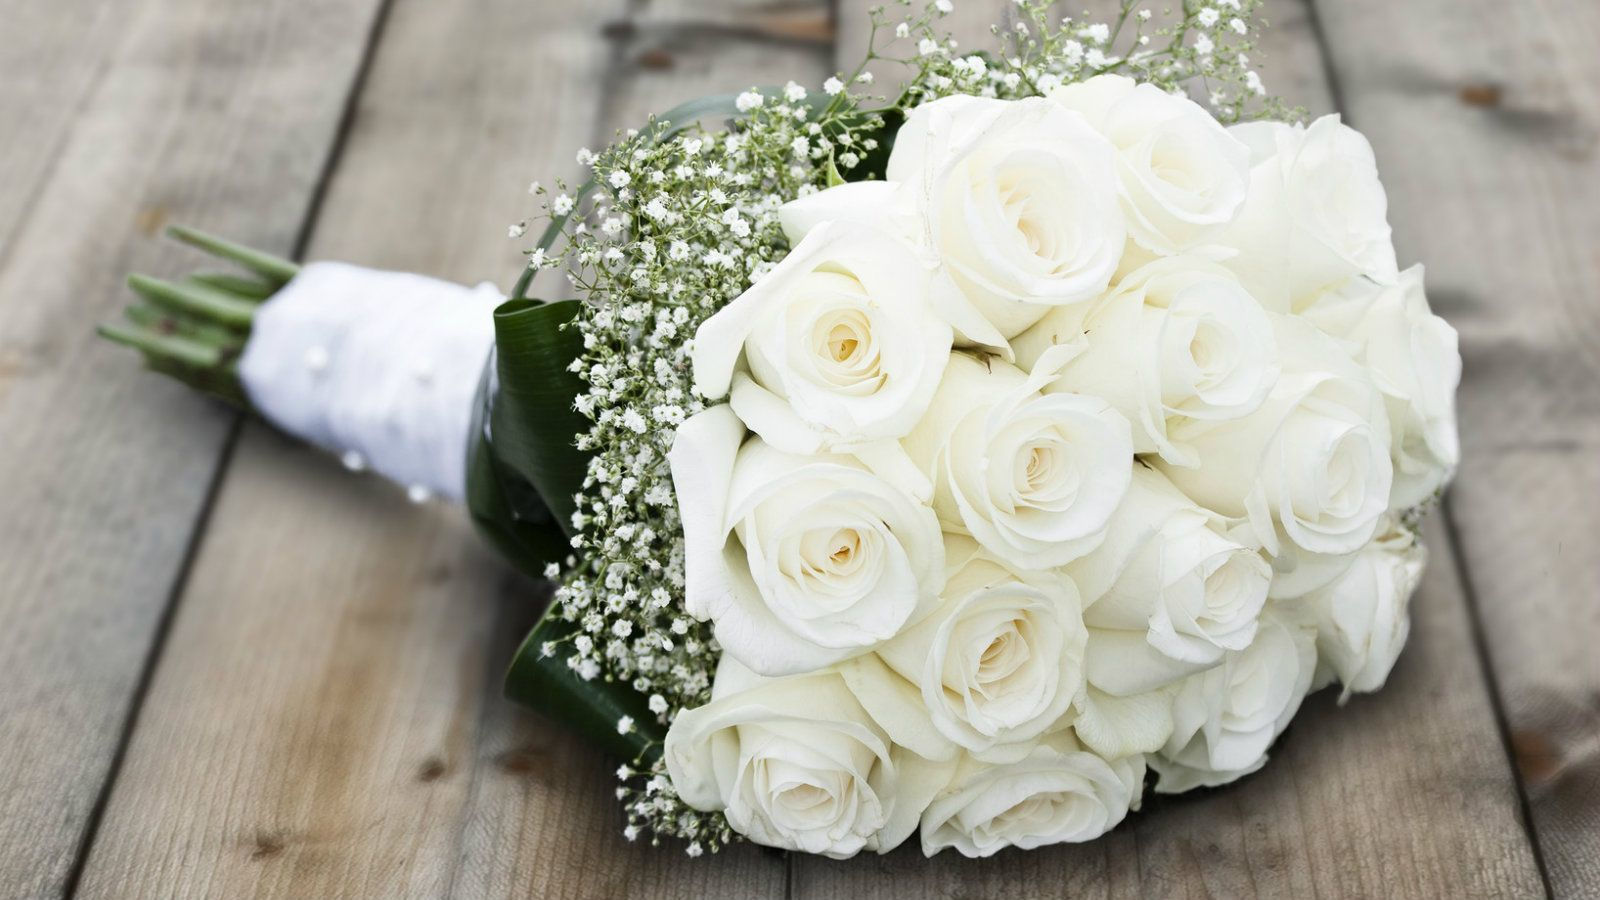 Pleasanton Wedding Venues - Bouquet